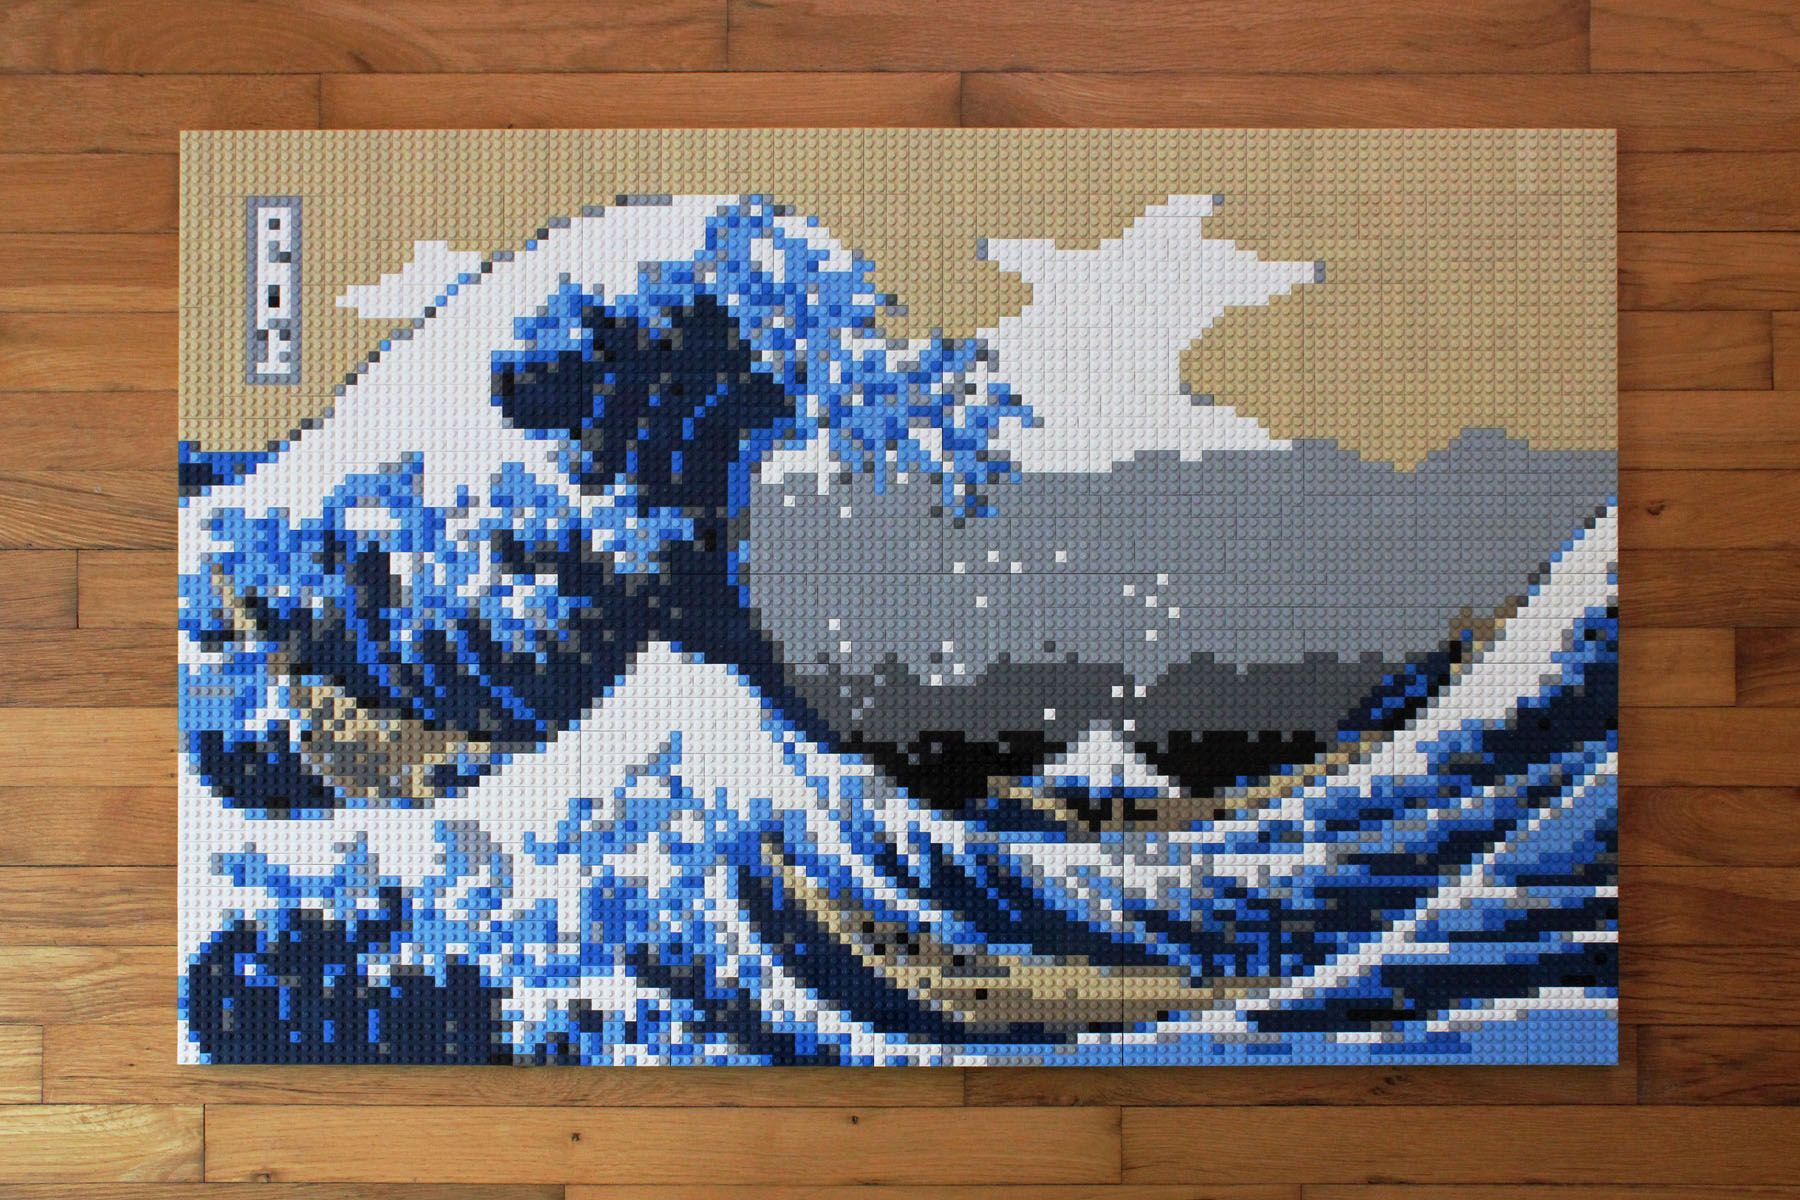 The Great Wave Off Kanagawa LEGO Mosaic by Keith Orlando